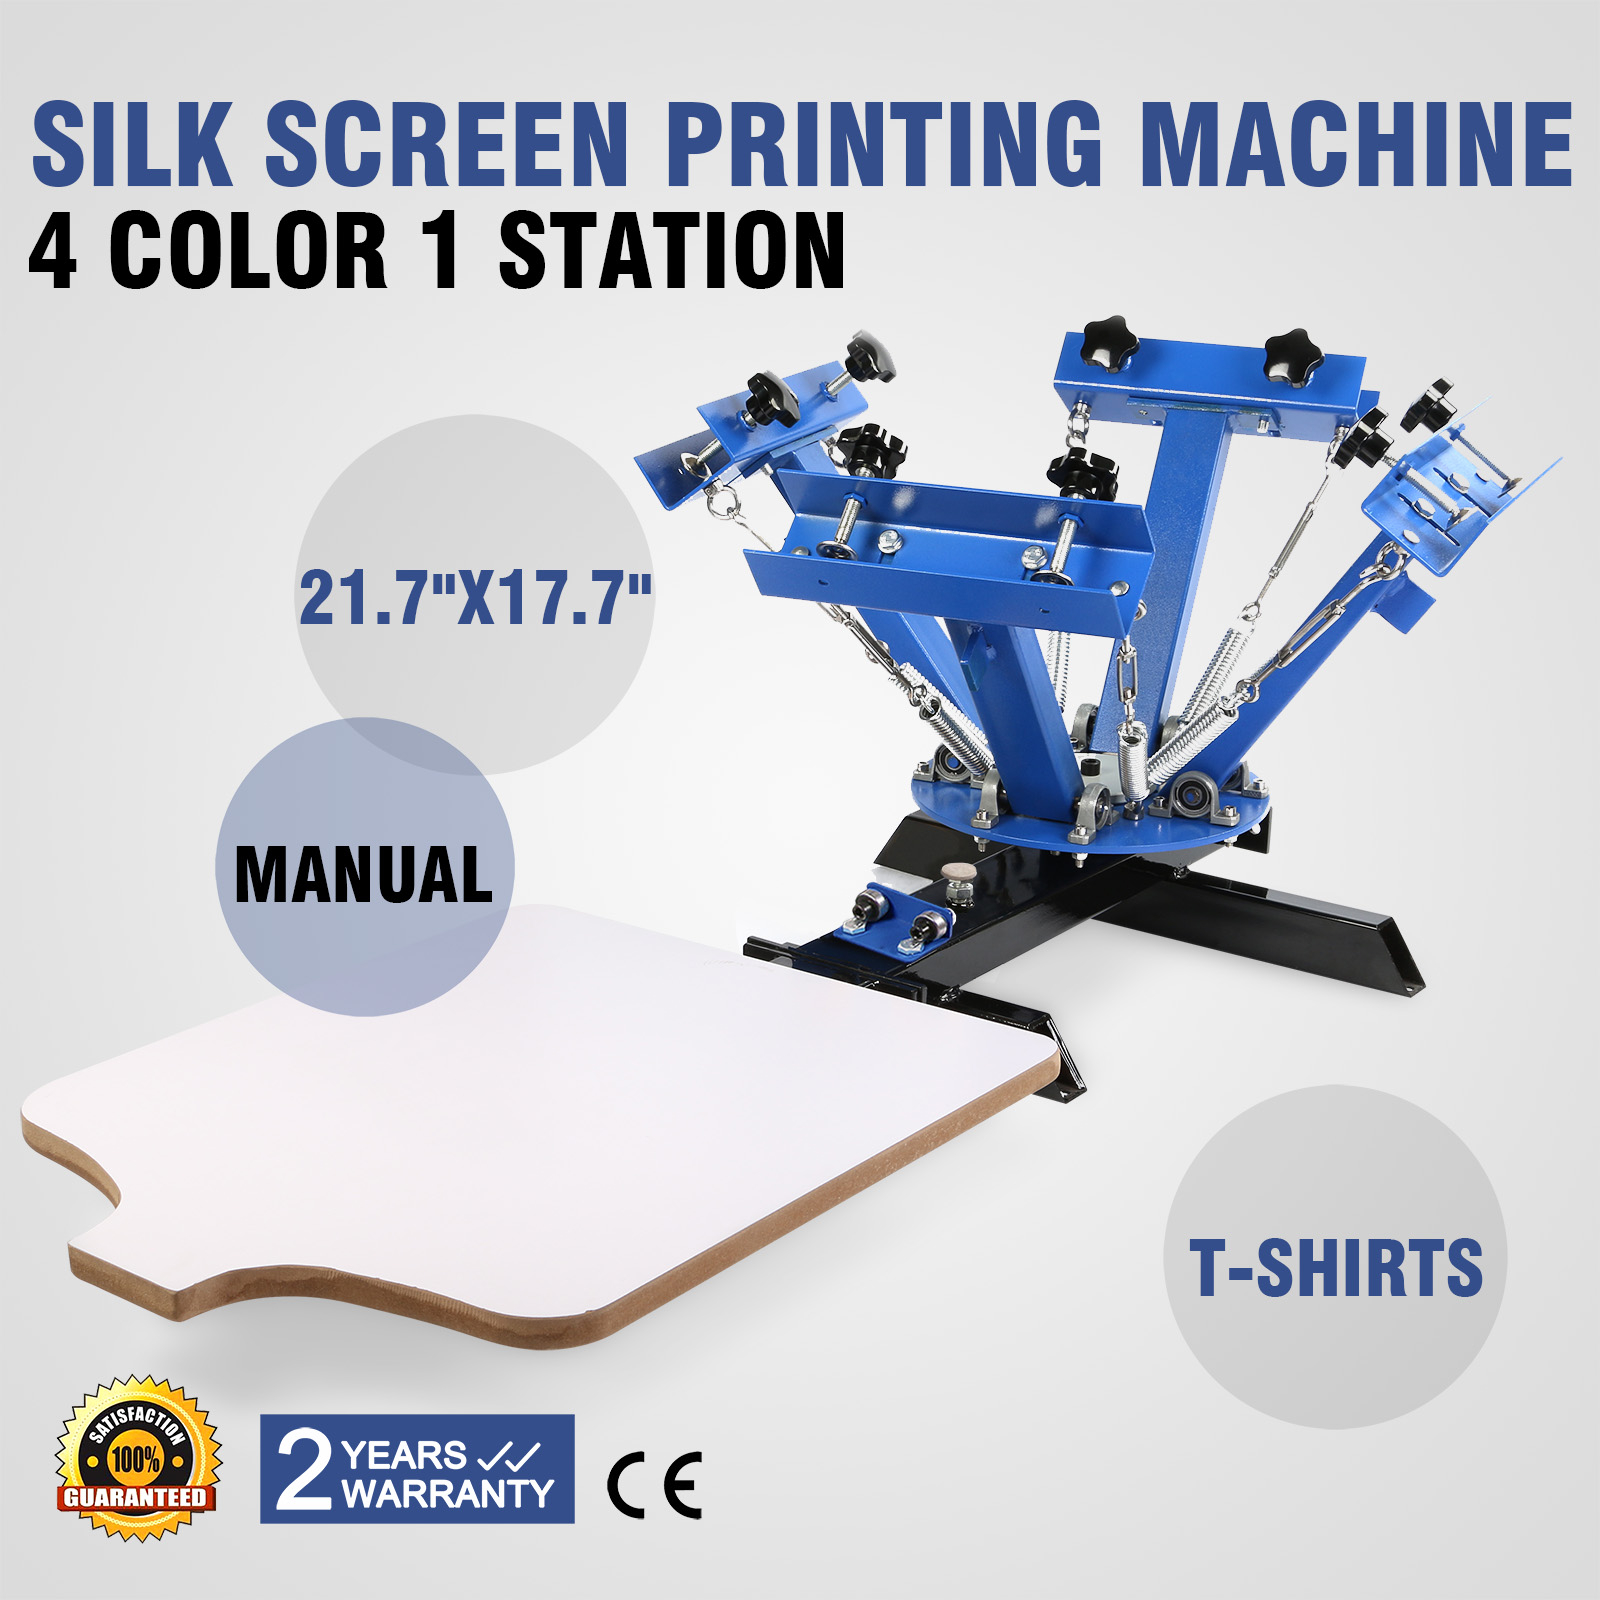 4 Color 1 Station Silk Screen Printing Machine T Shirt Wood Pressing Circuit Board Quality Watch This Item Email A Friend